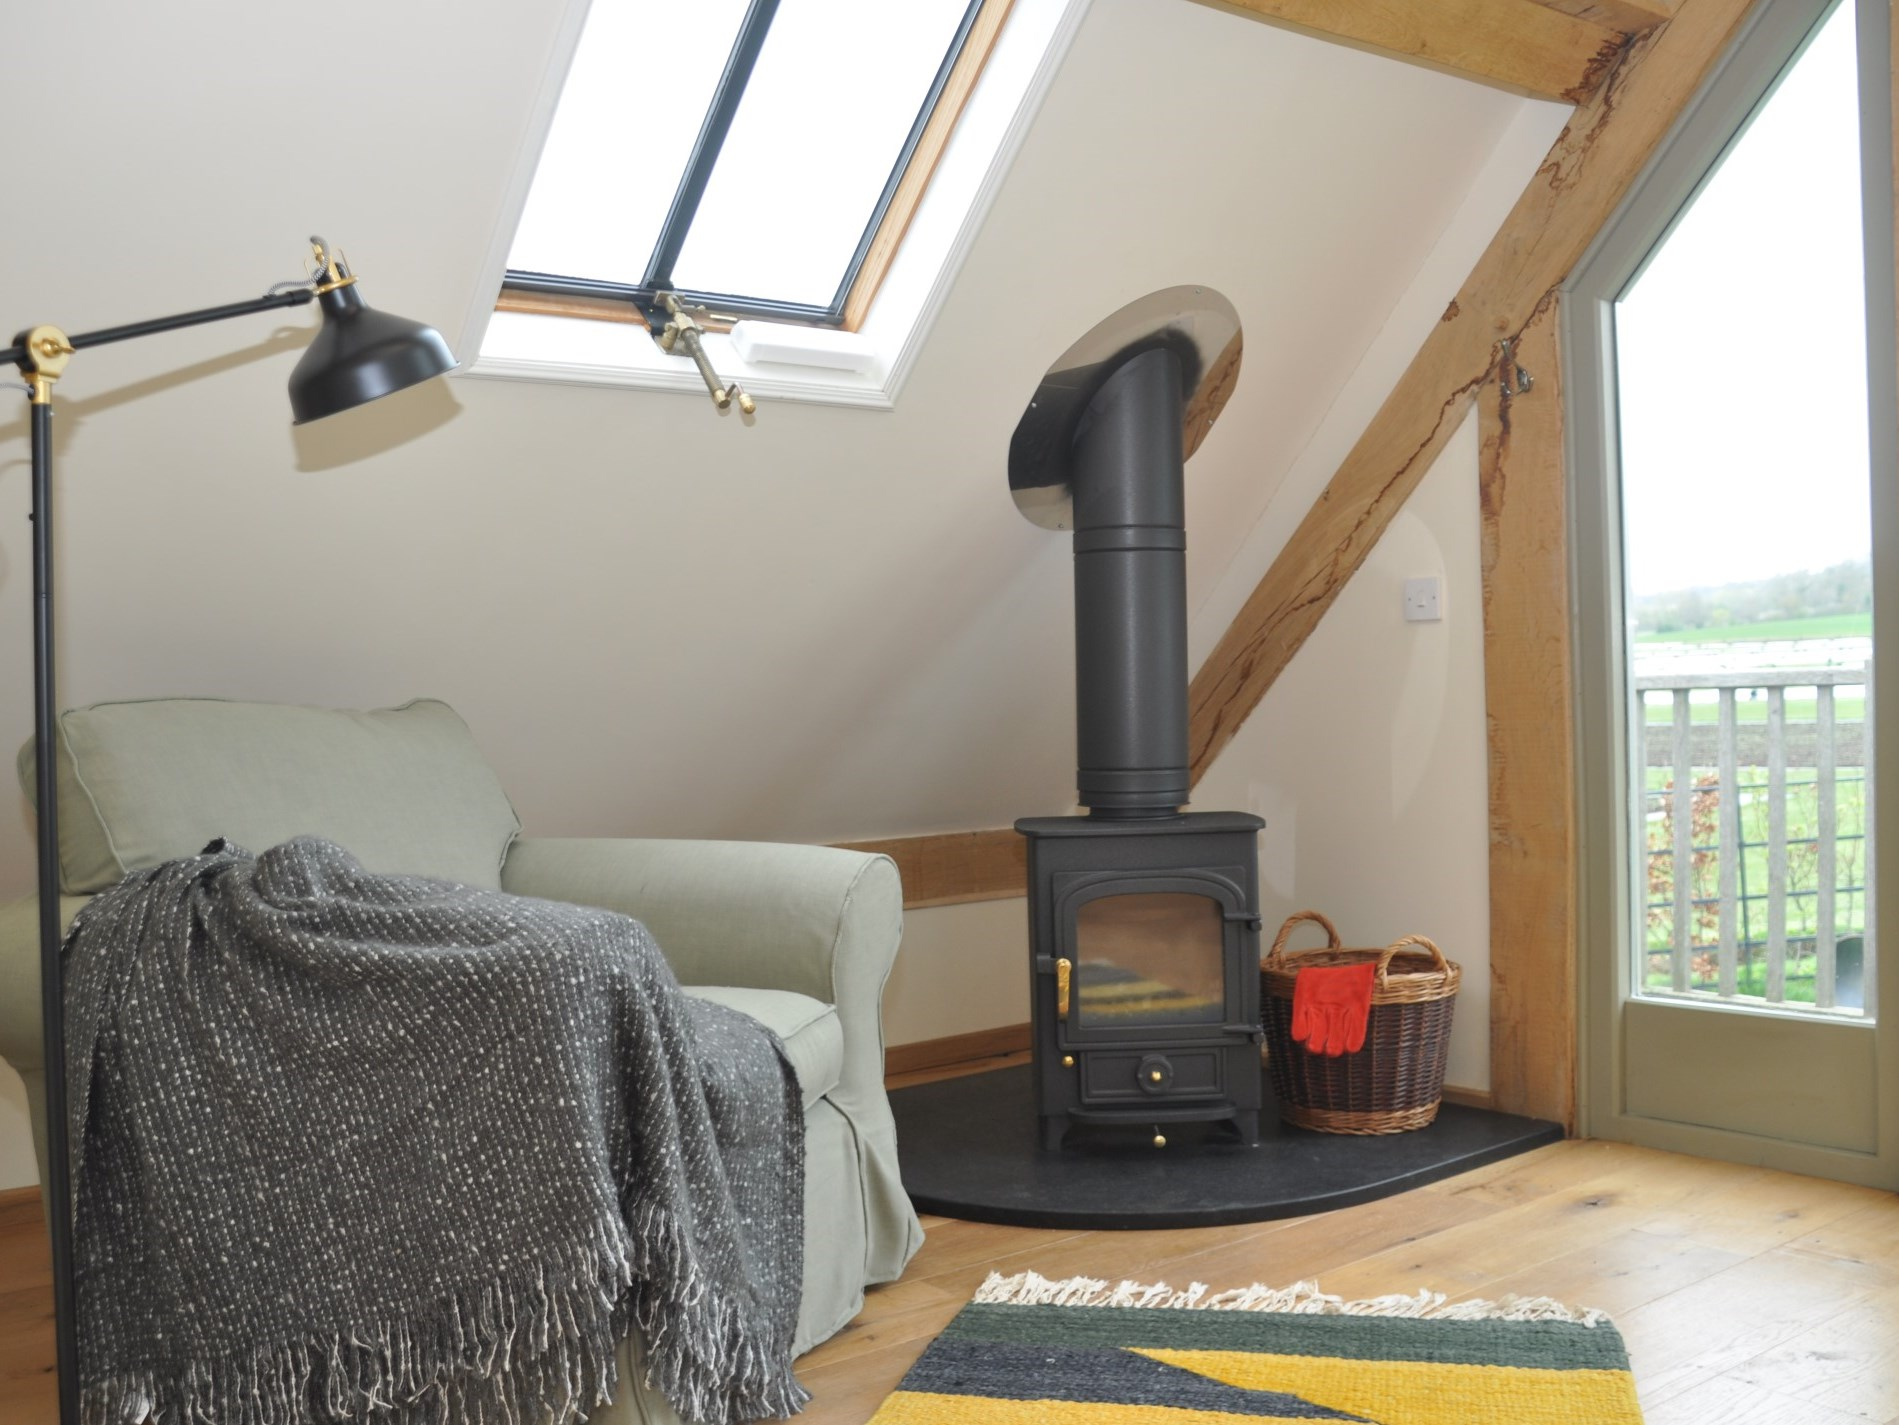 Curl up in front of the wood burner with a good book